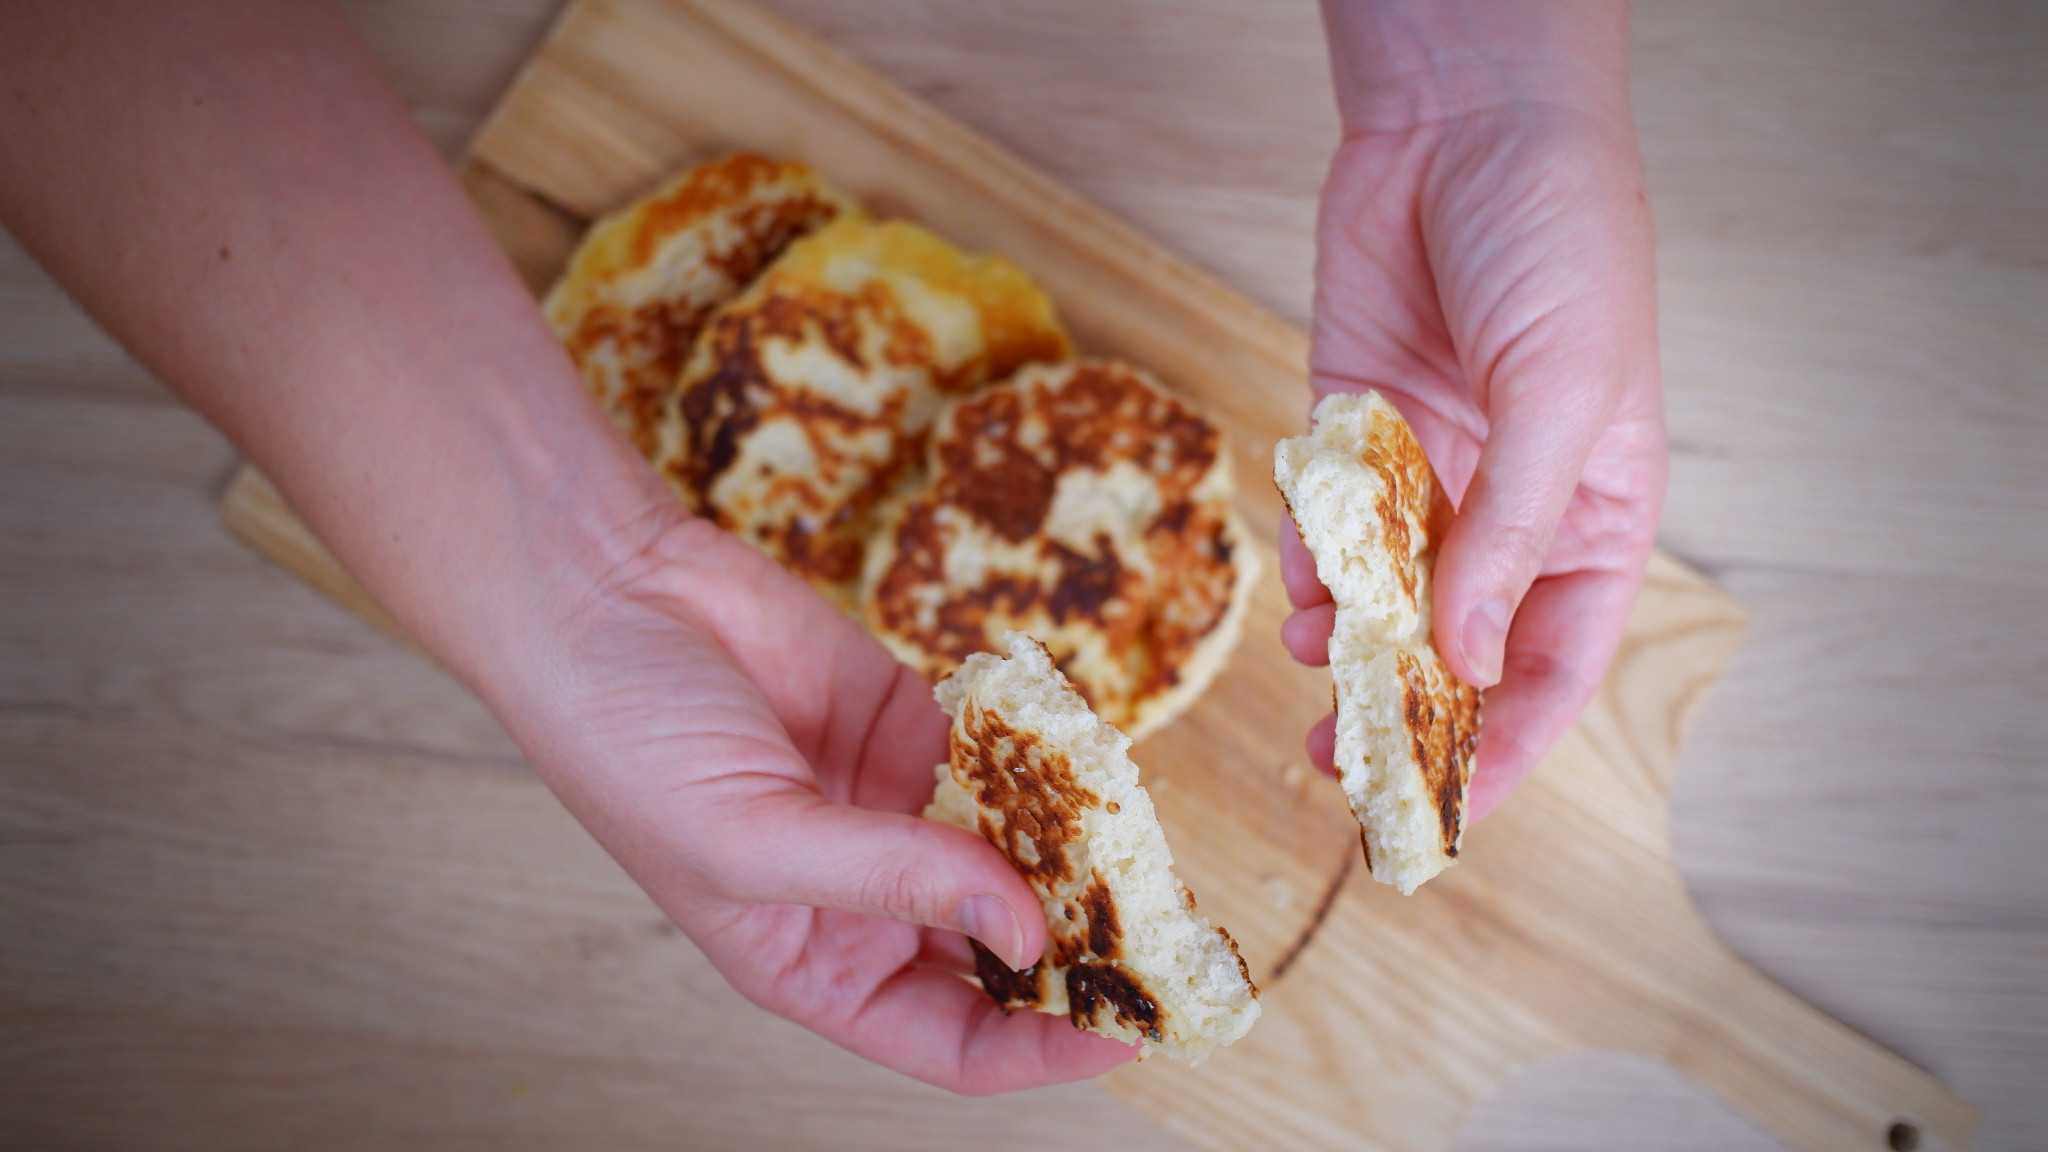 9Honey's Quarantine Kitchen cook-along: two-ingredient flatbread